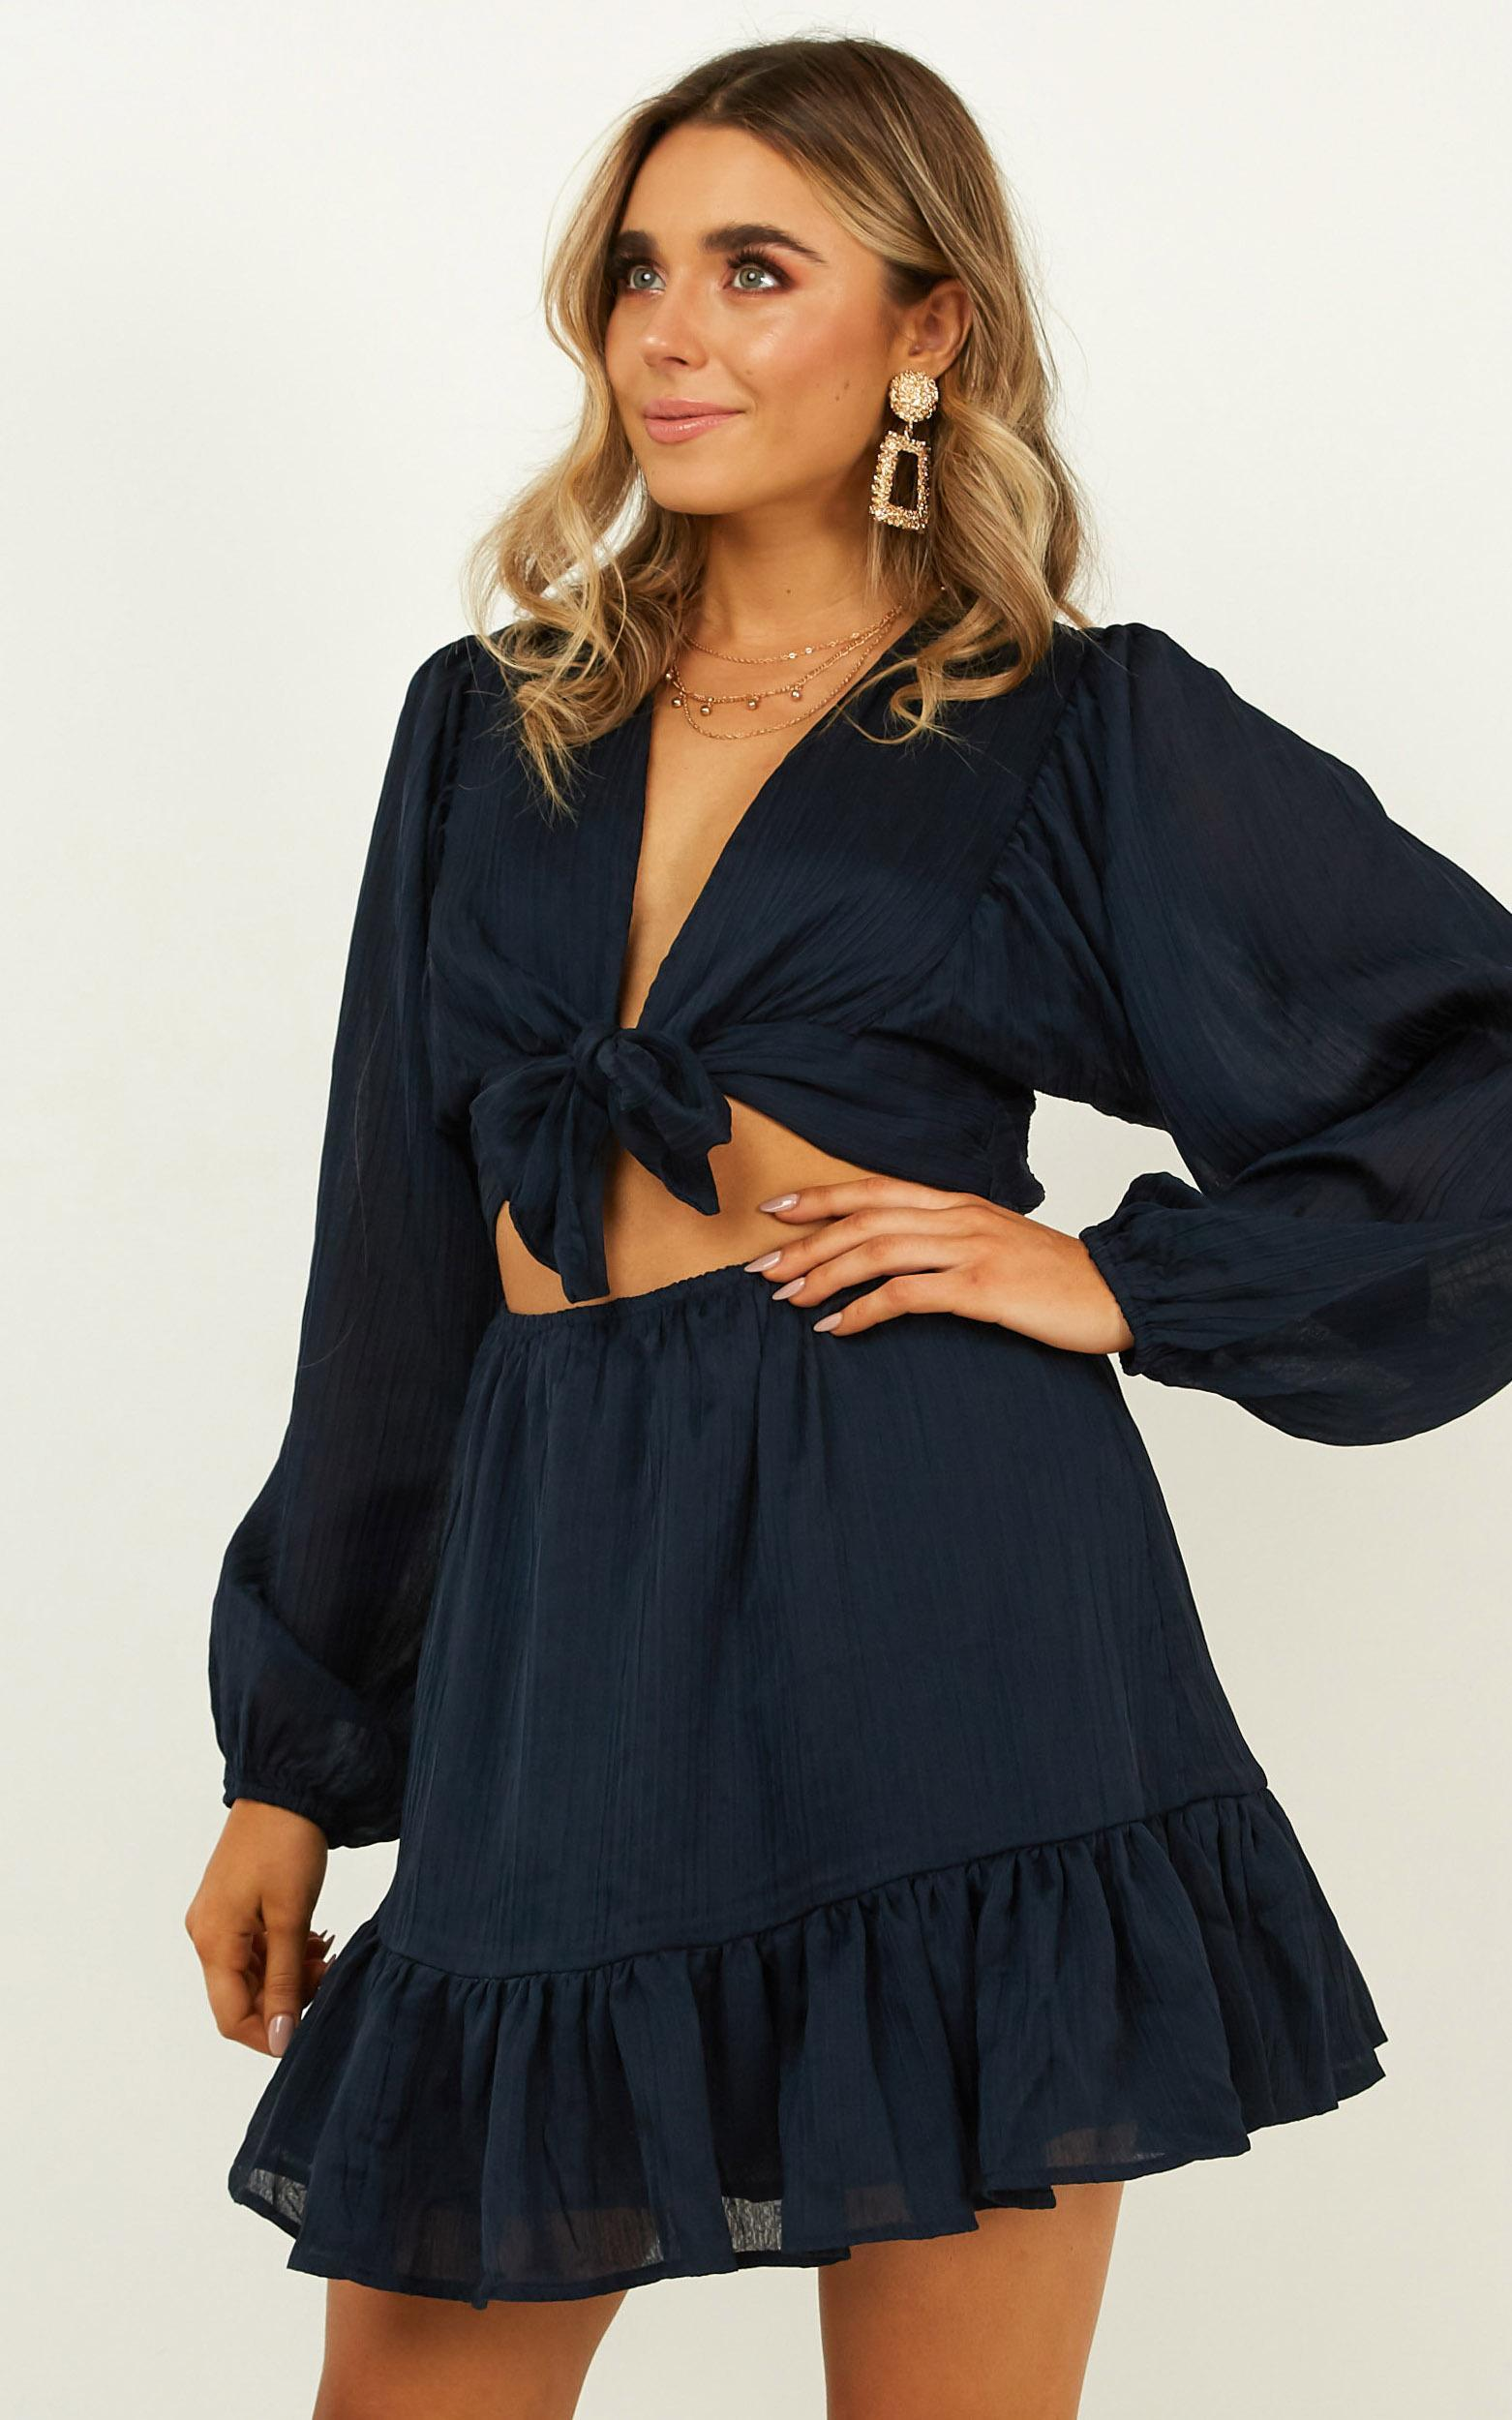 Consideration Dress in navy - 18 (XXXL), Navy, hi-res image number null